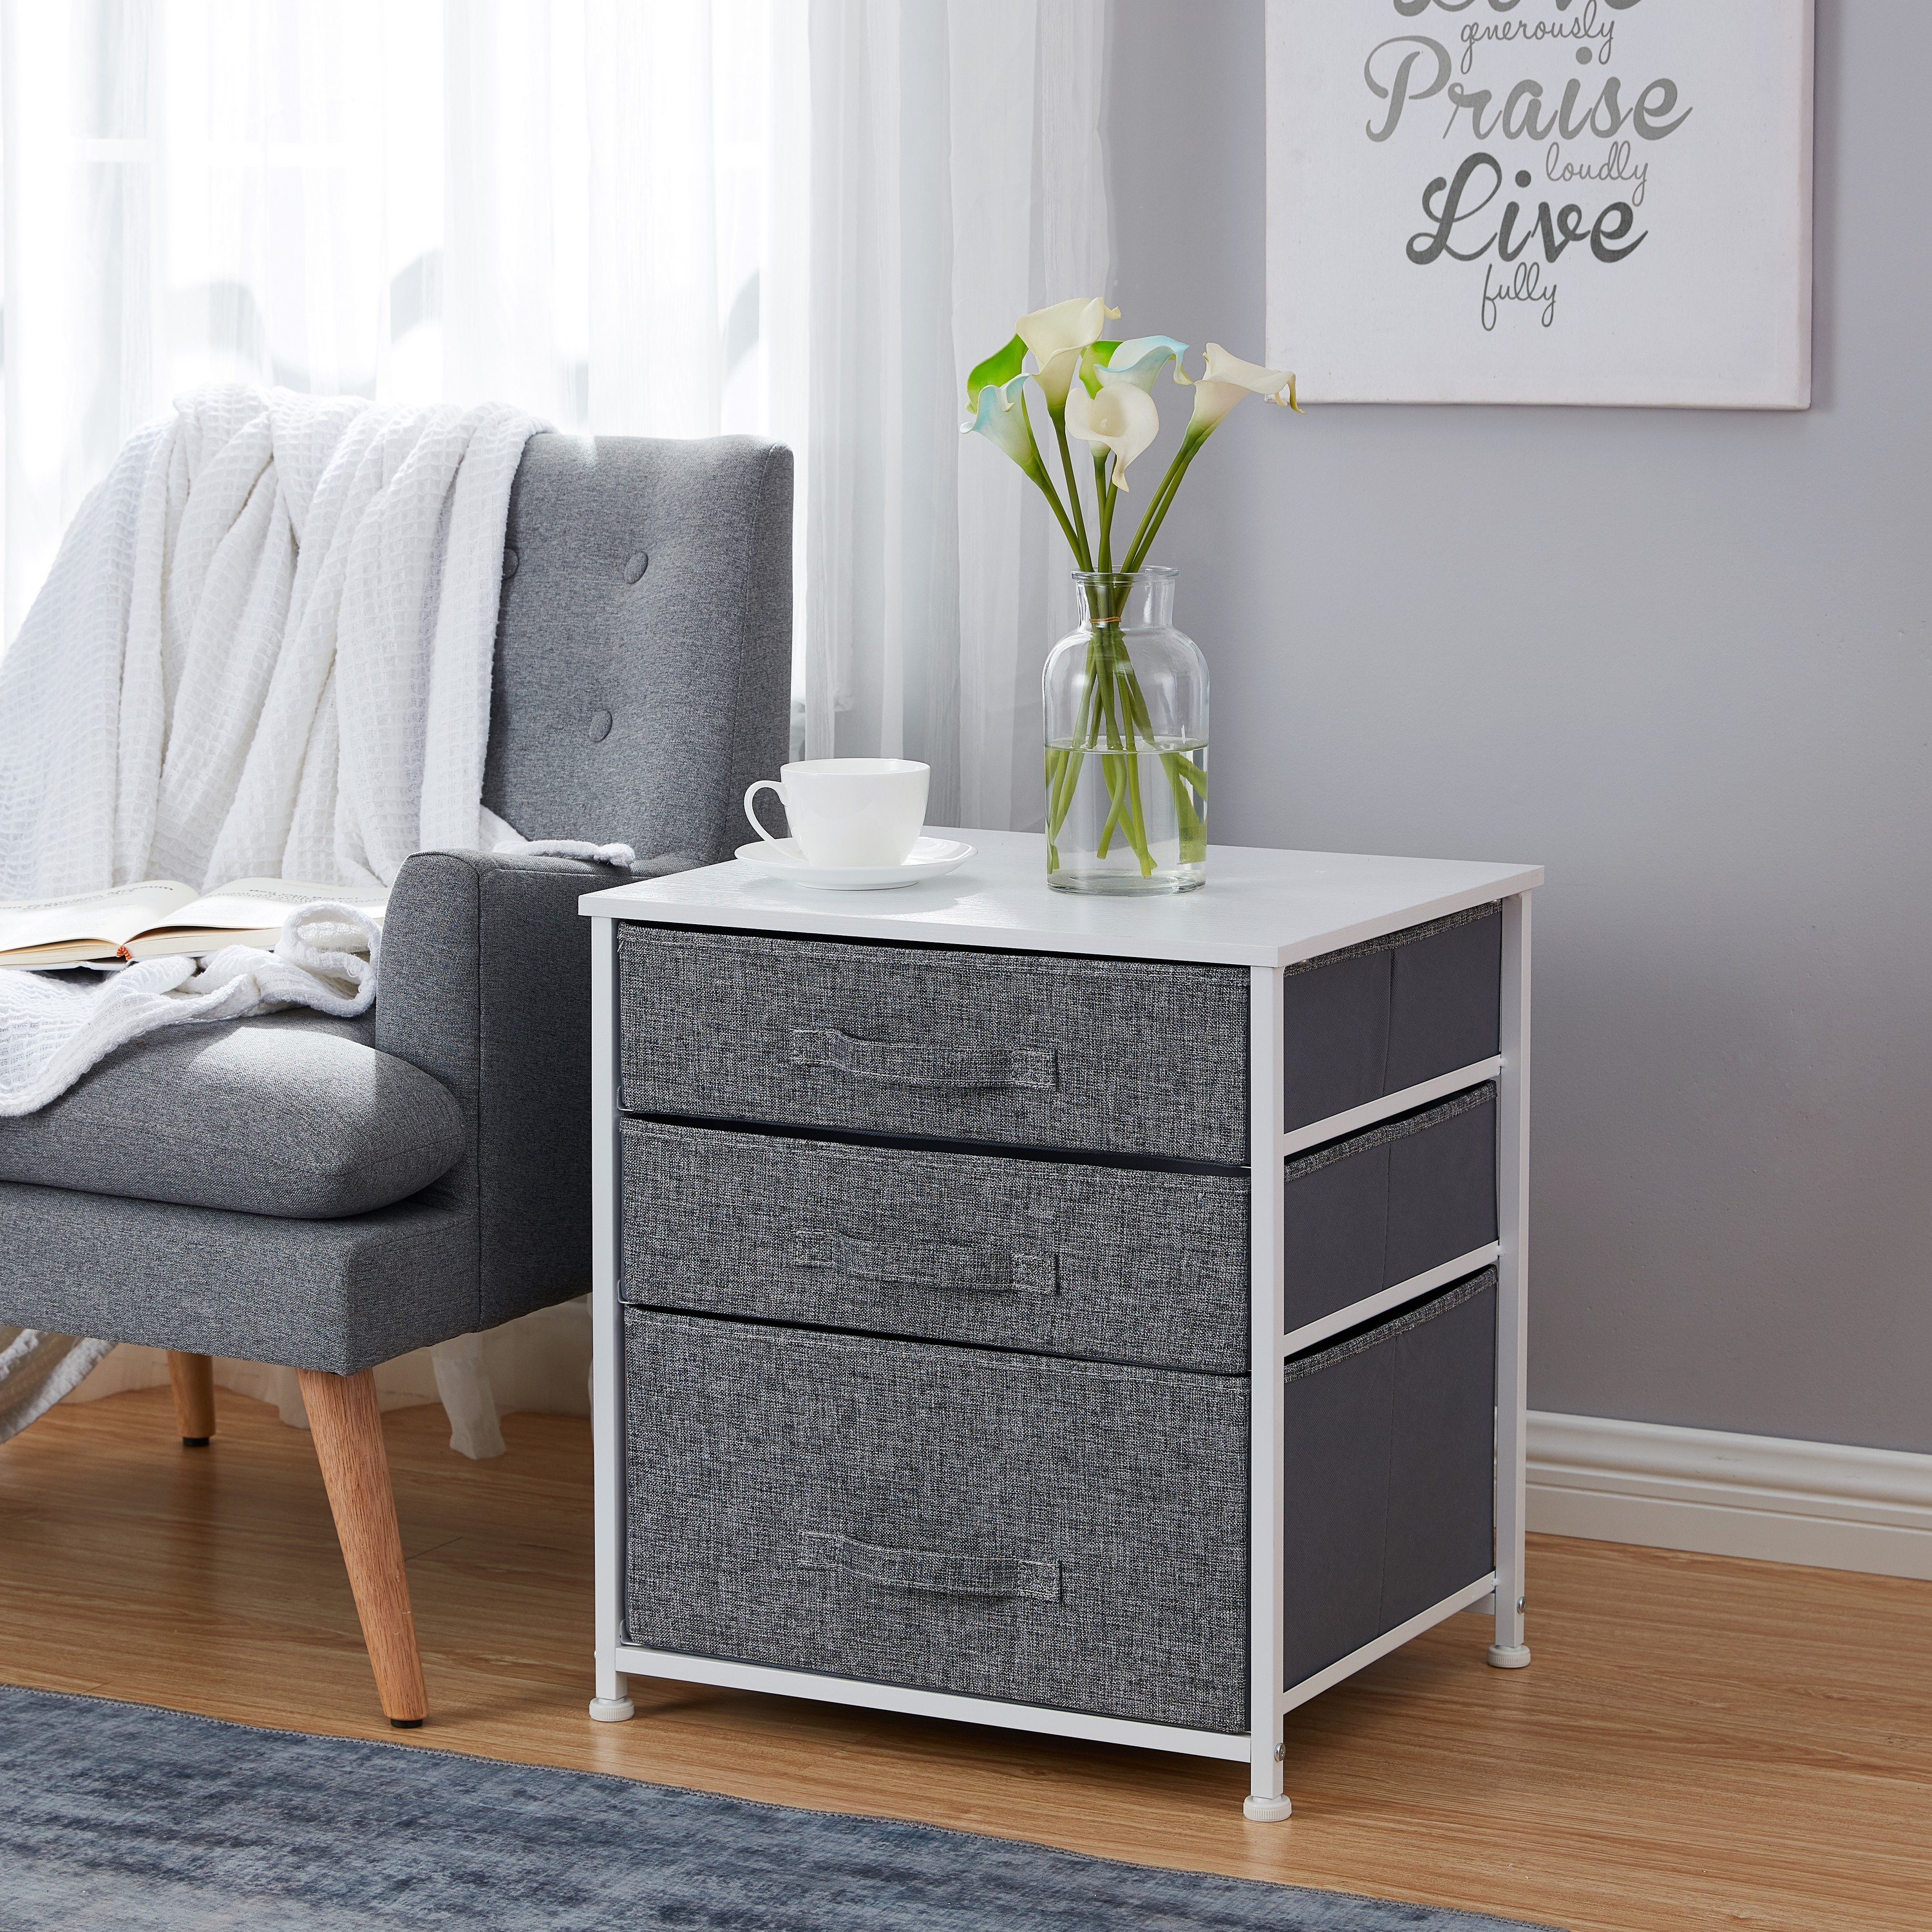 3 Drawer Nightstand Storage Dresser Tower White Wood Top Sturdy Metal Frame Linen Fabric Storage Bins With Pull Tabs Organizer Unit For Hallway Entryway Closets And Bedroom Gray Walmart Com Walmart Com